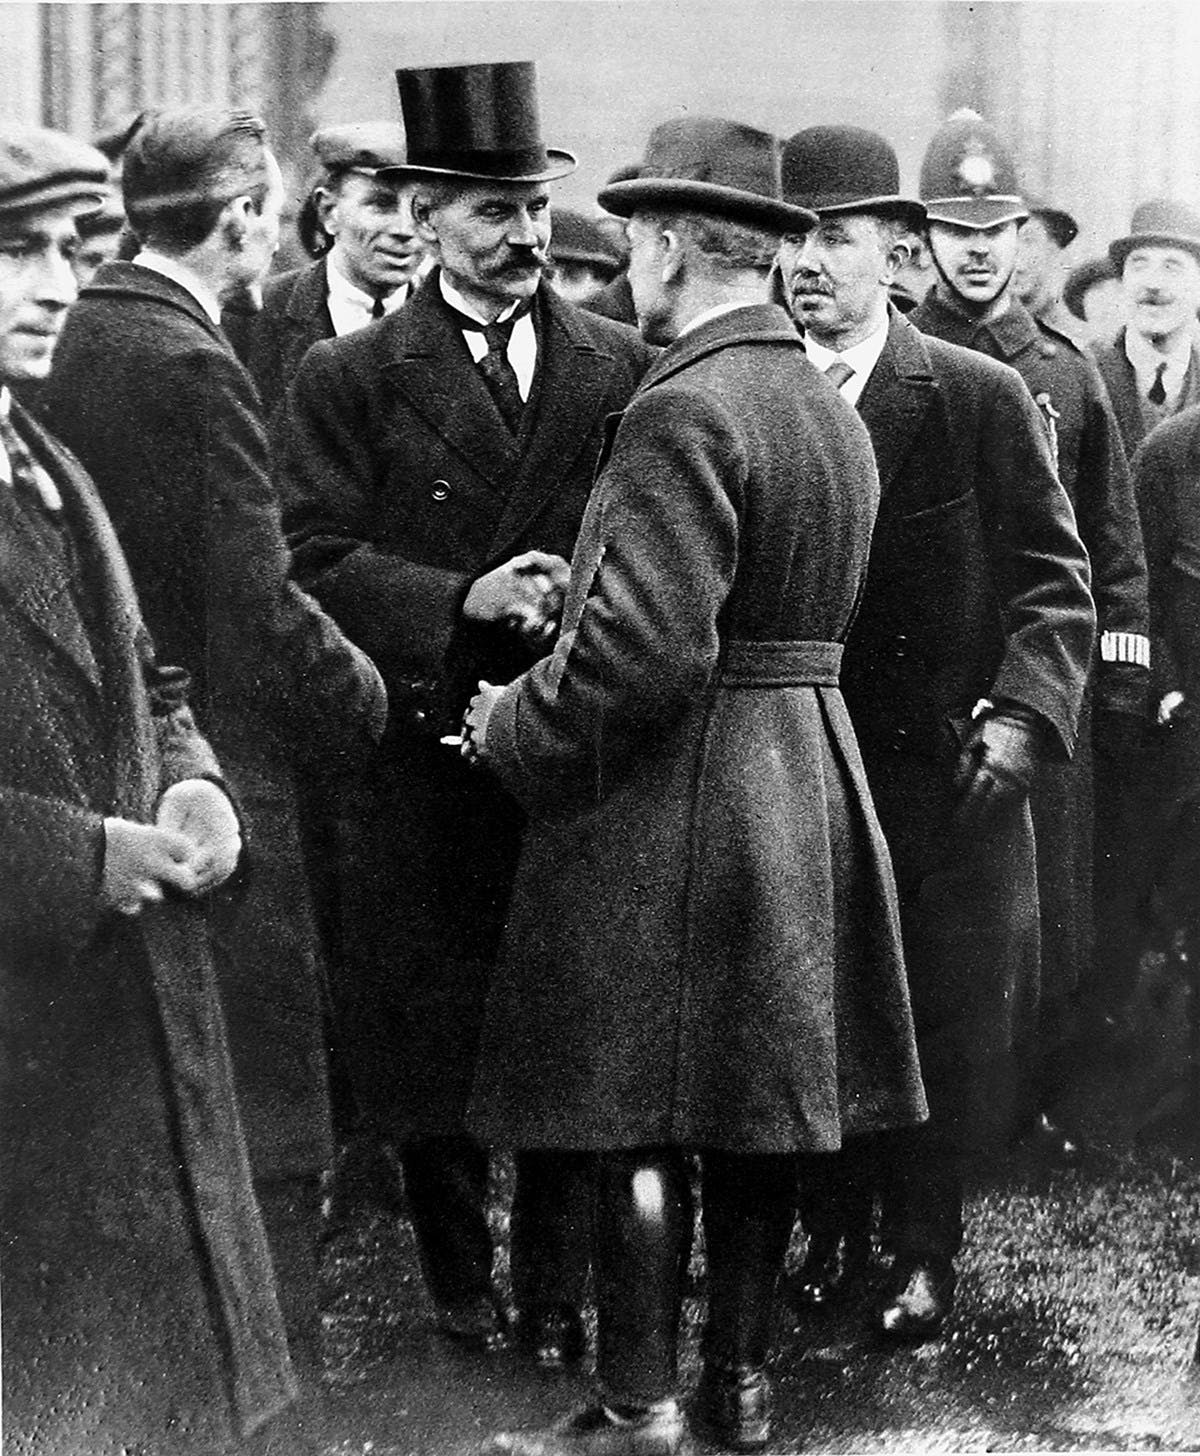 Black and white photograph of Ramsay MacDonald shaking hands with other gentlemen.